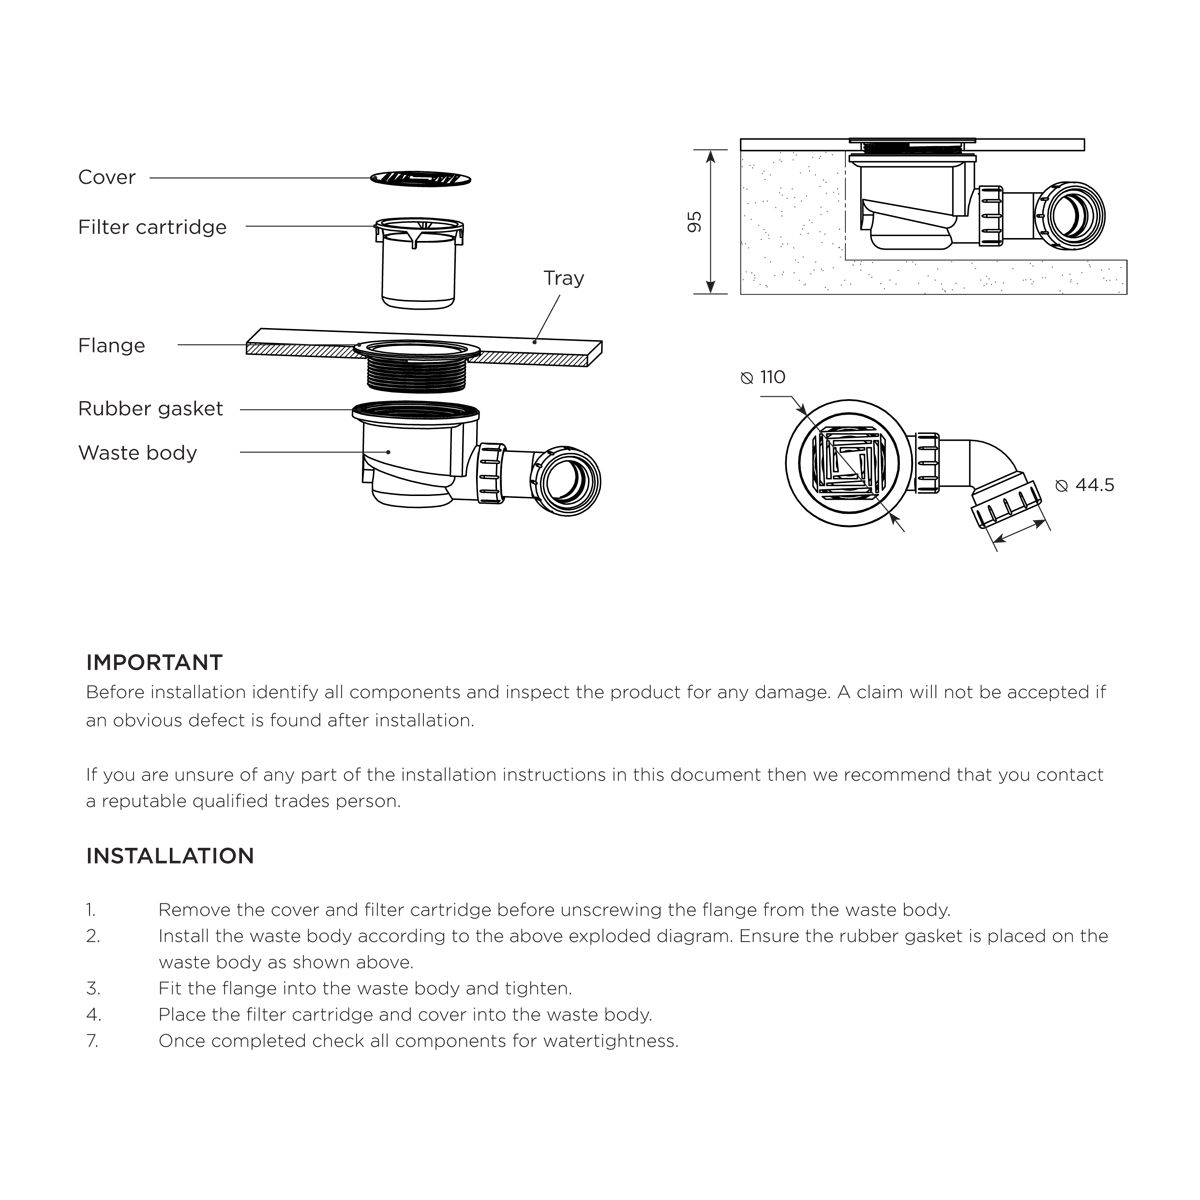 Aquadart 90mm Shower Waste with Chrome Grate Instructions